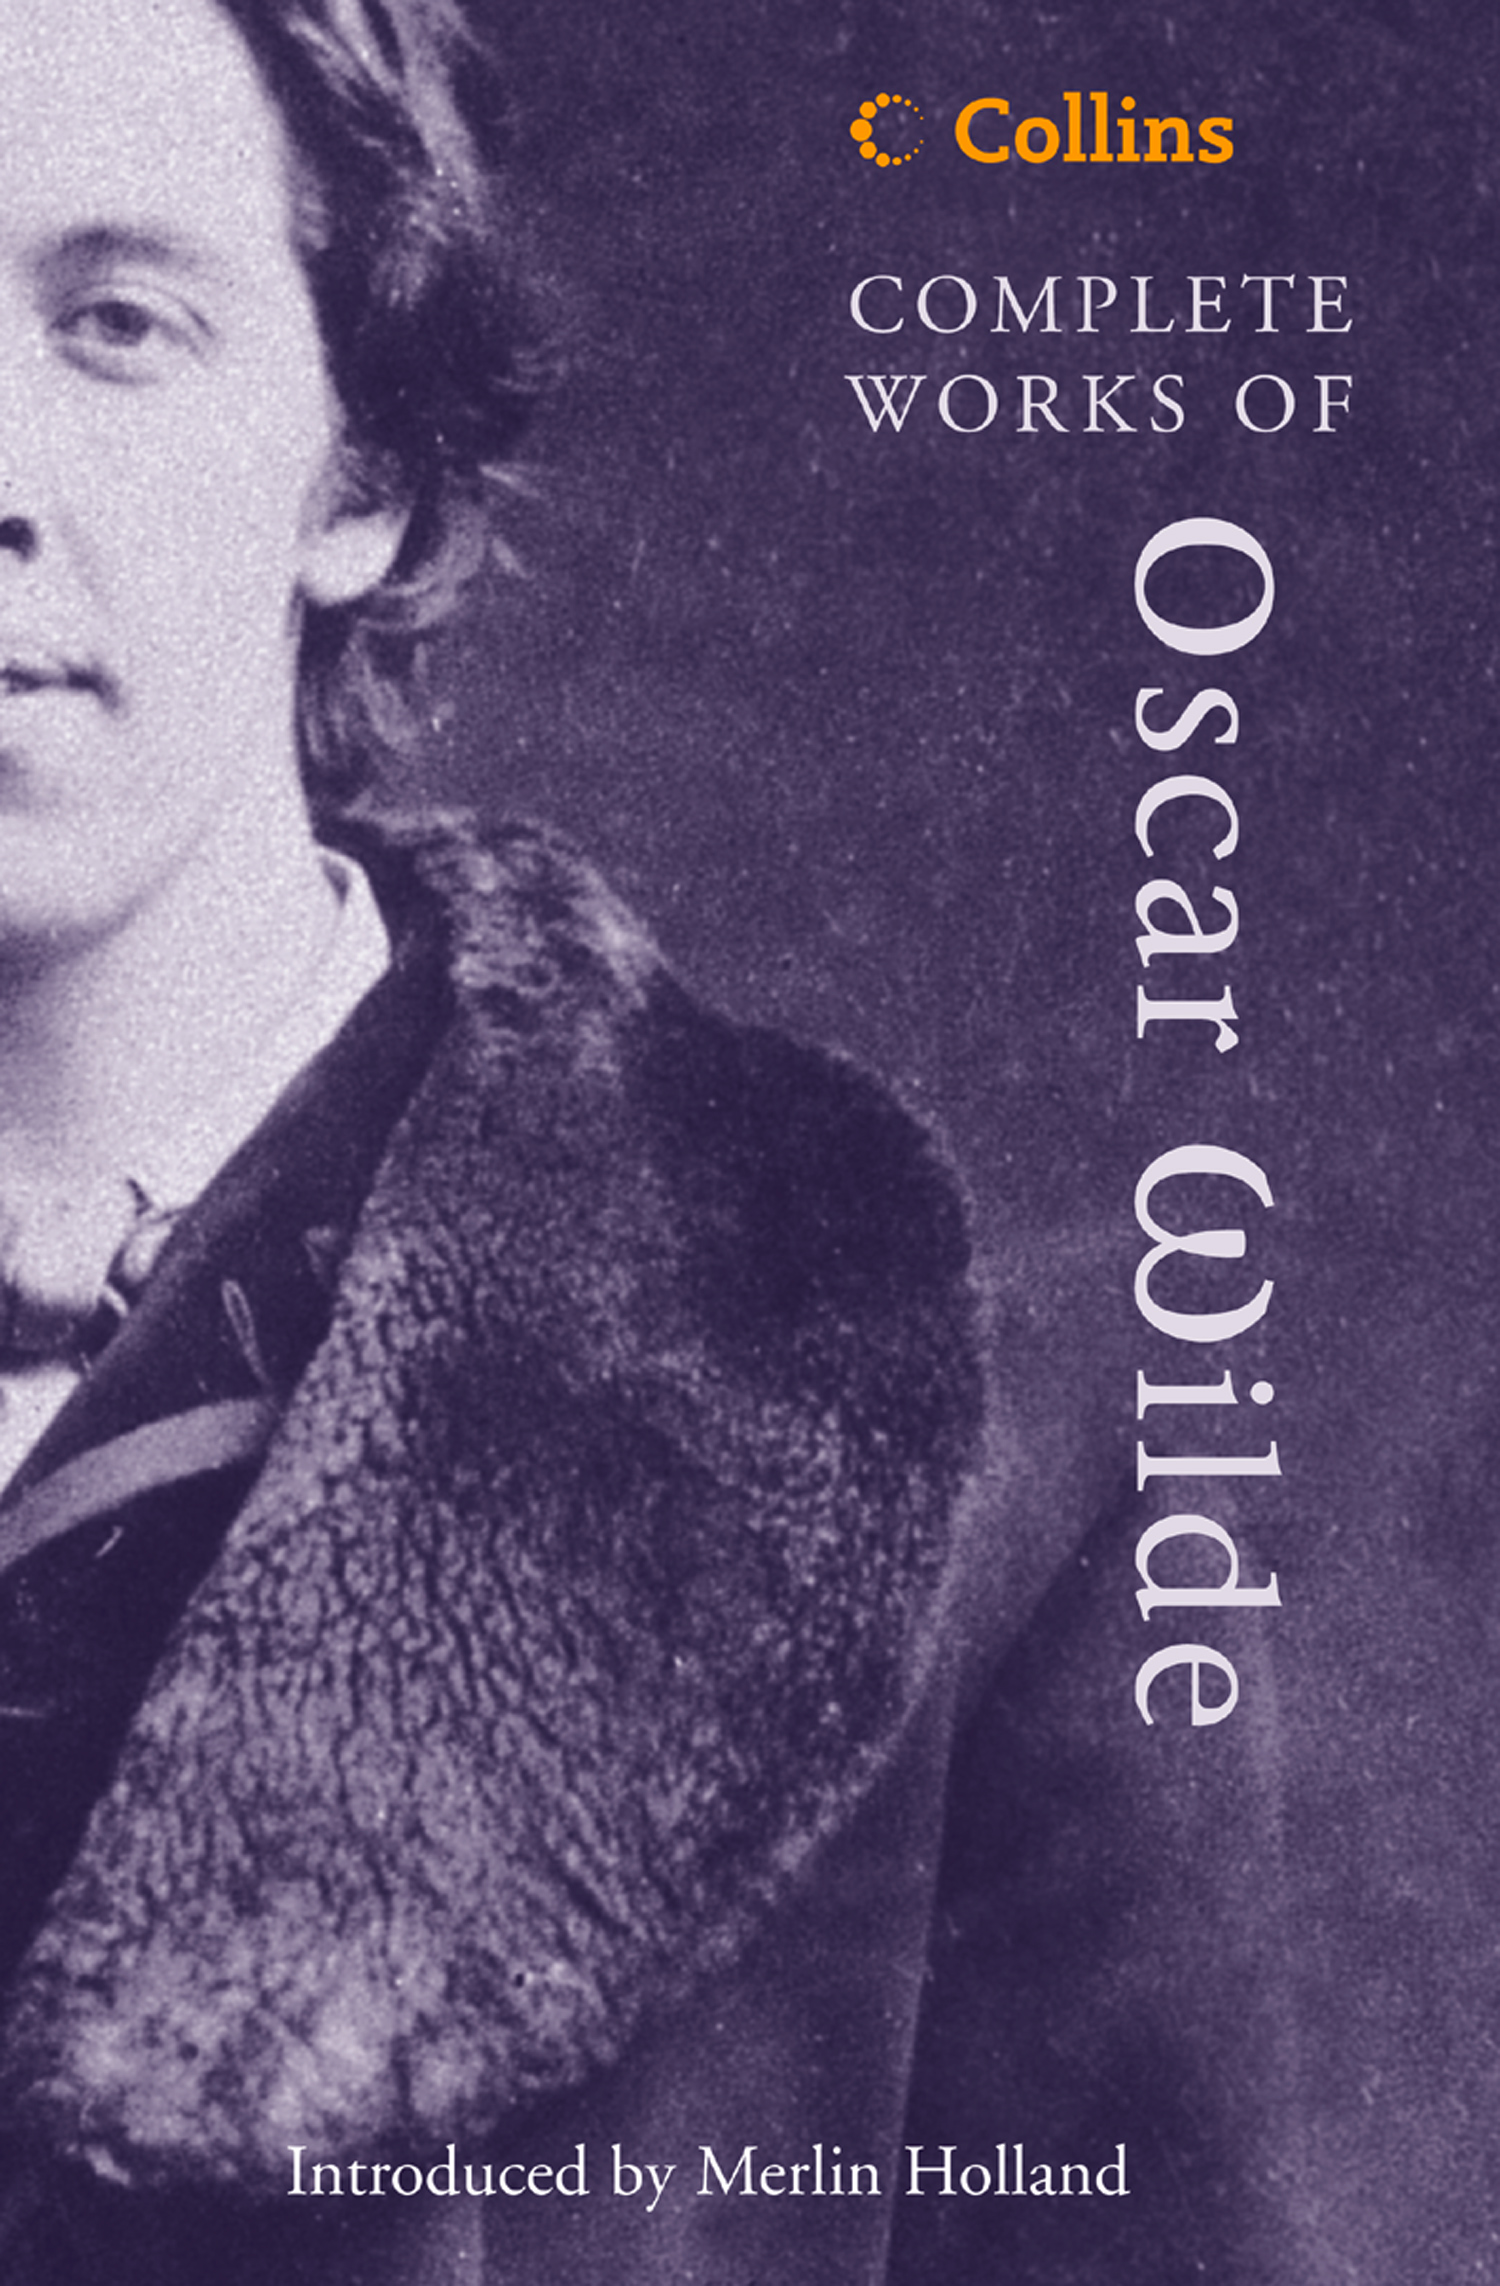 Complete Works of Oscar Wilde (Collins Classics) By: Oscar Wilde